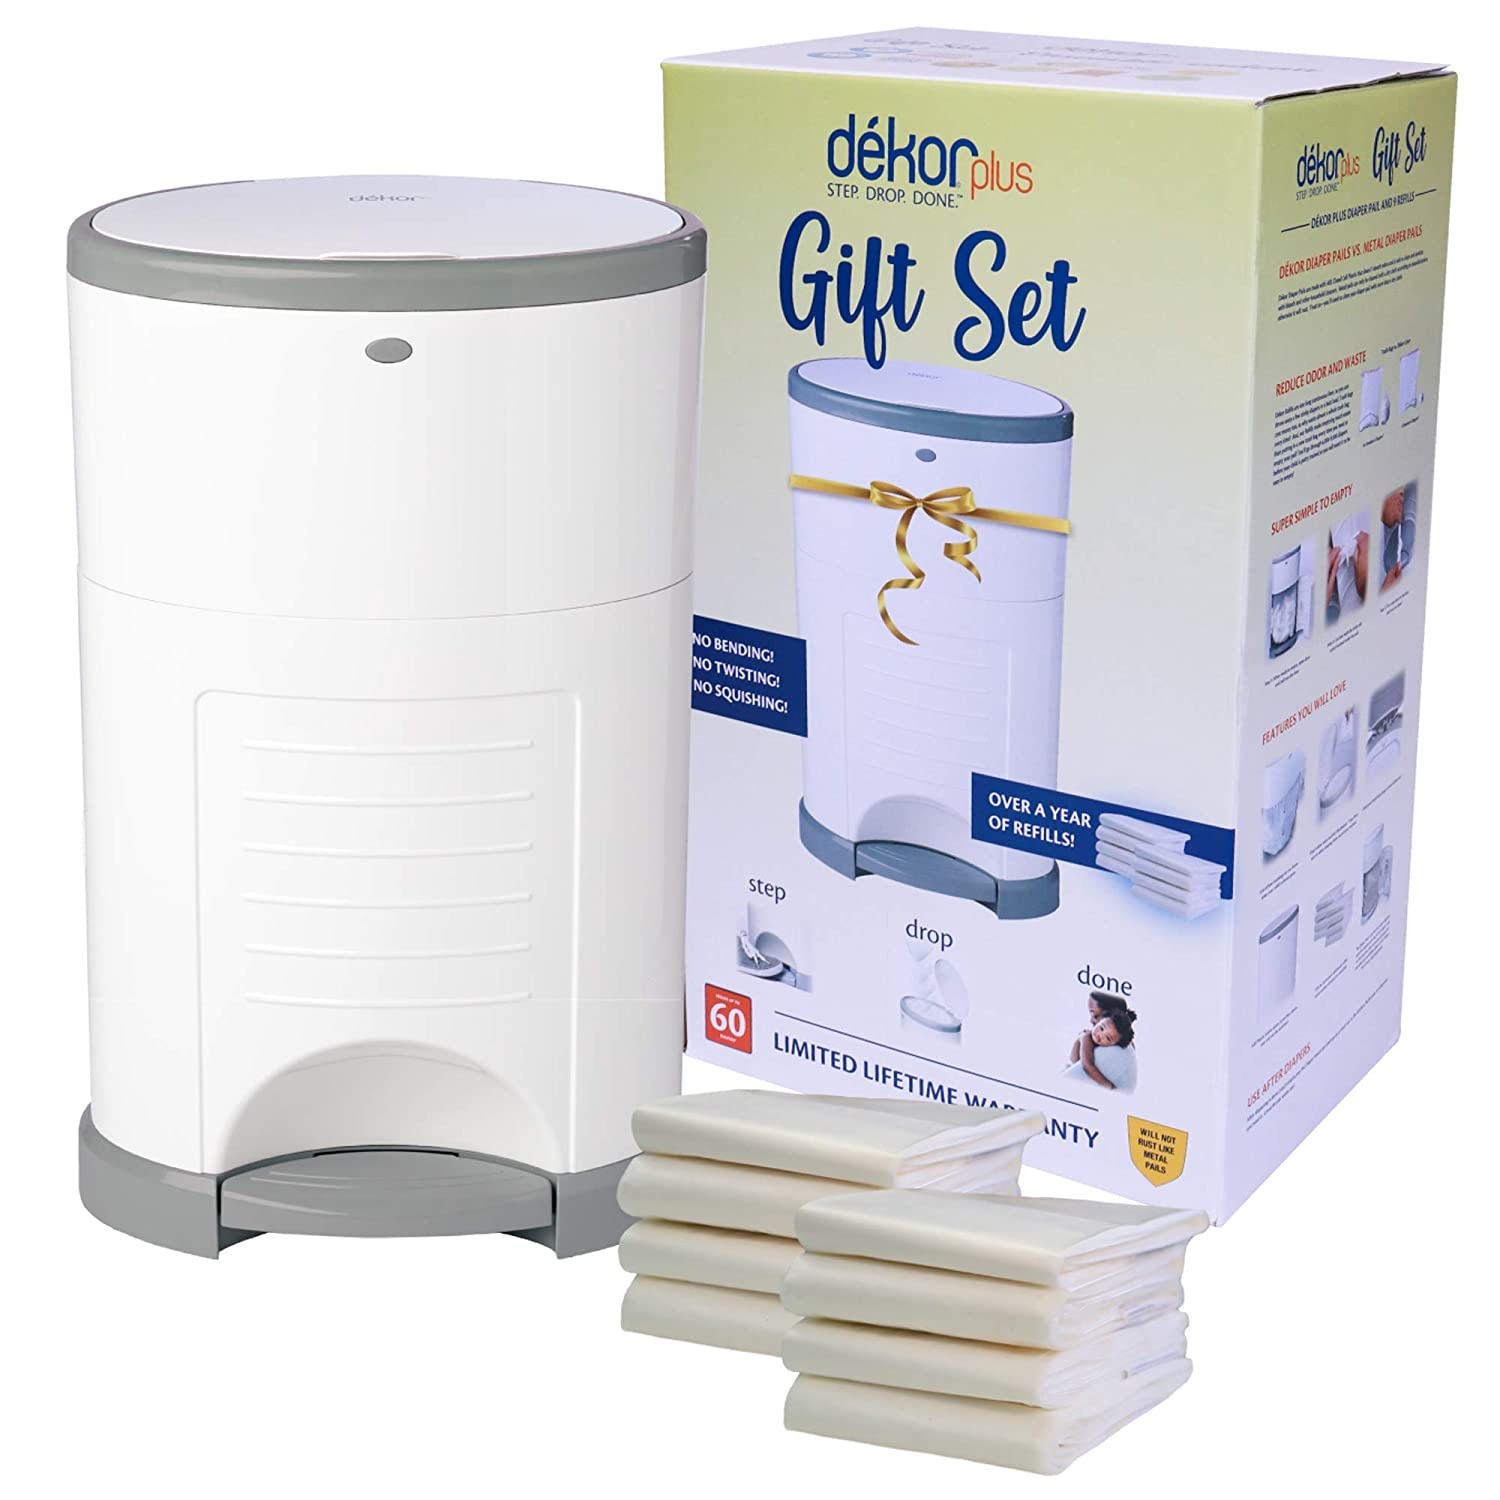 Dékor Plus Diaper Pail Gift Set – White | Comes with Over a Year's Supply Worth of Dékor Refills!